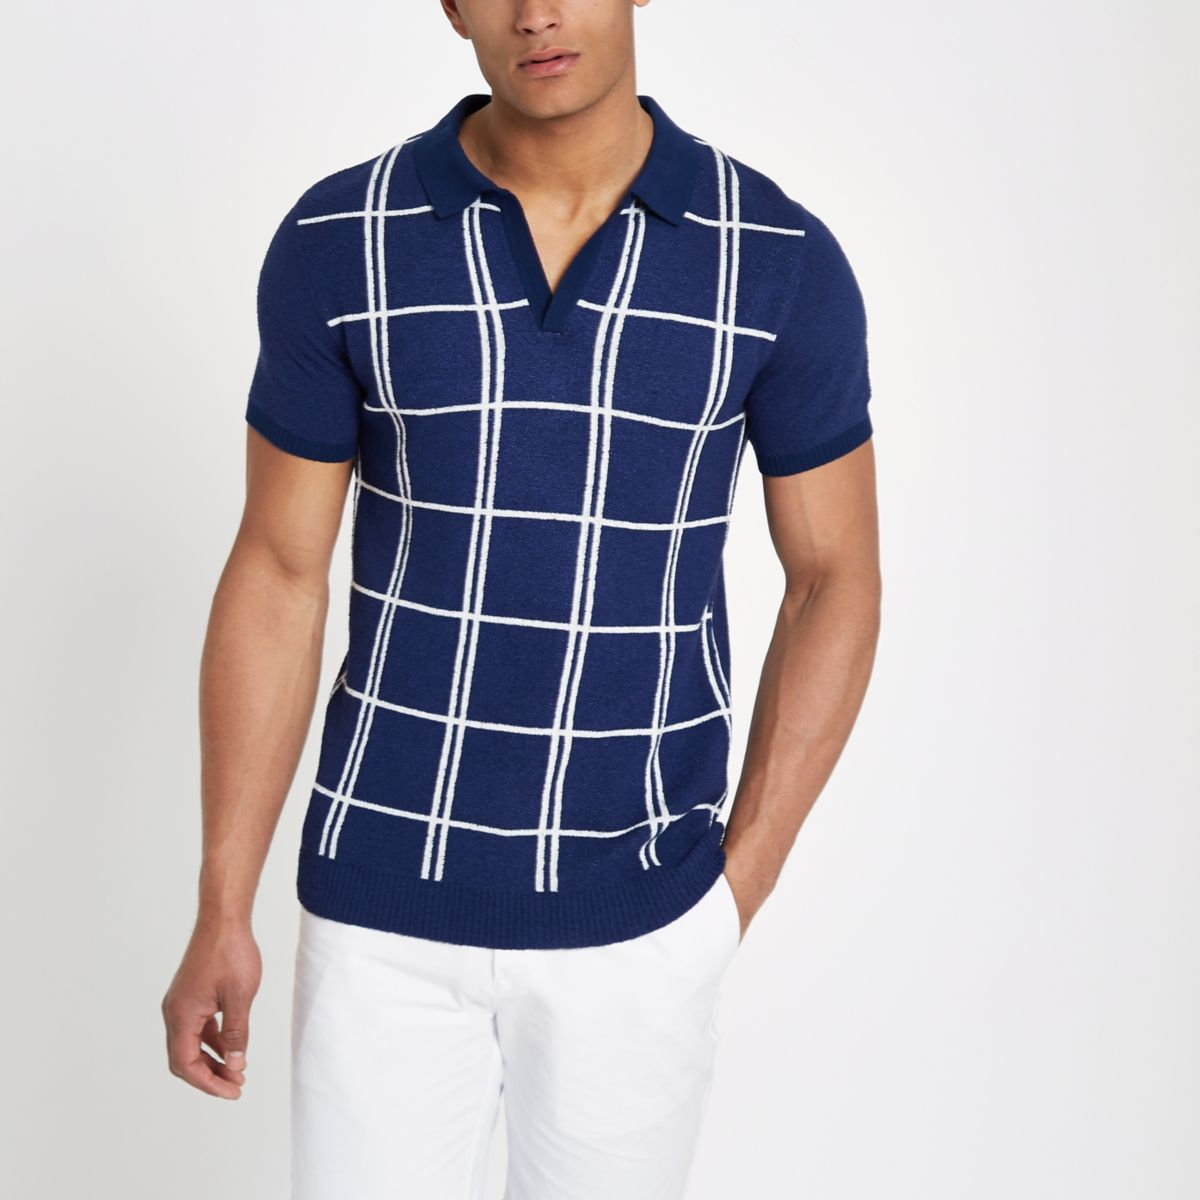 Navy check revere slim fit knit polo shirt